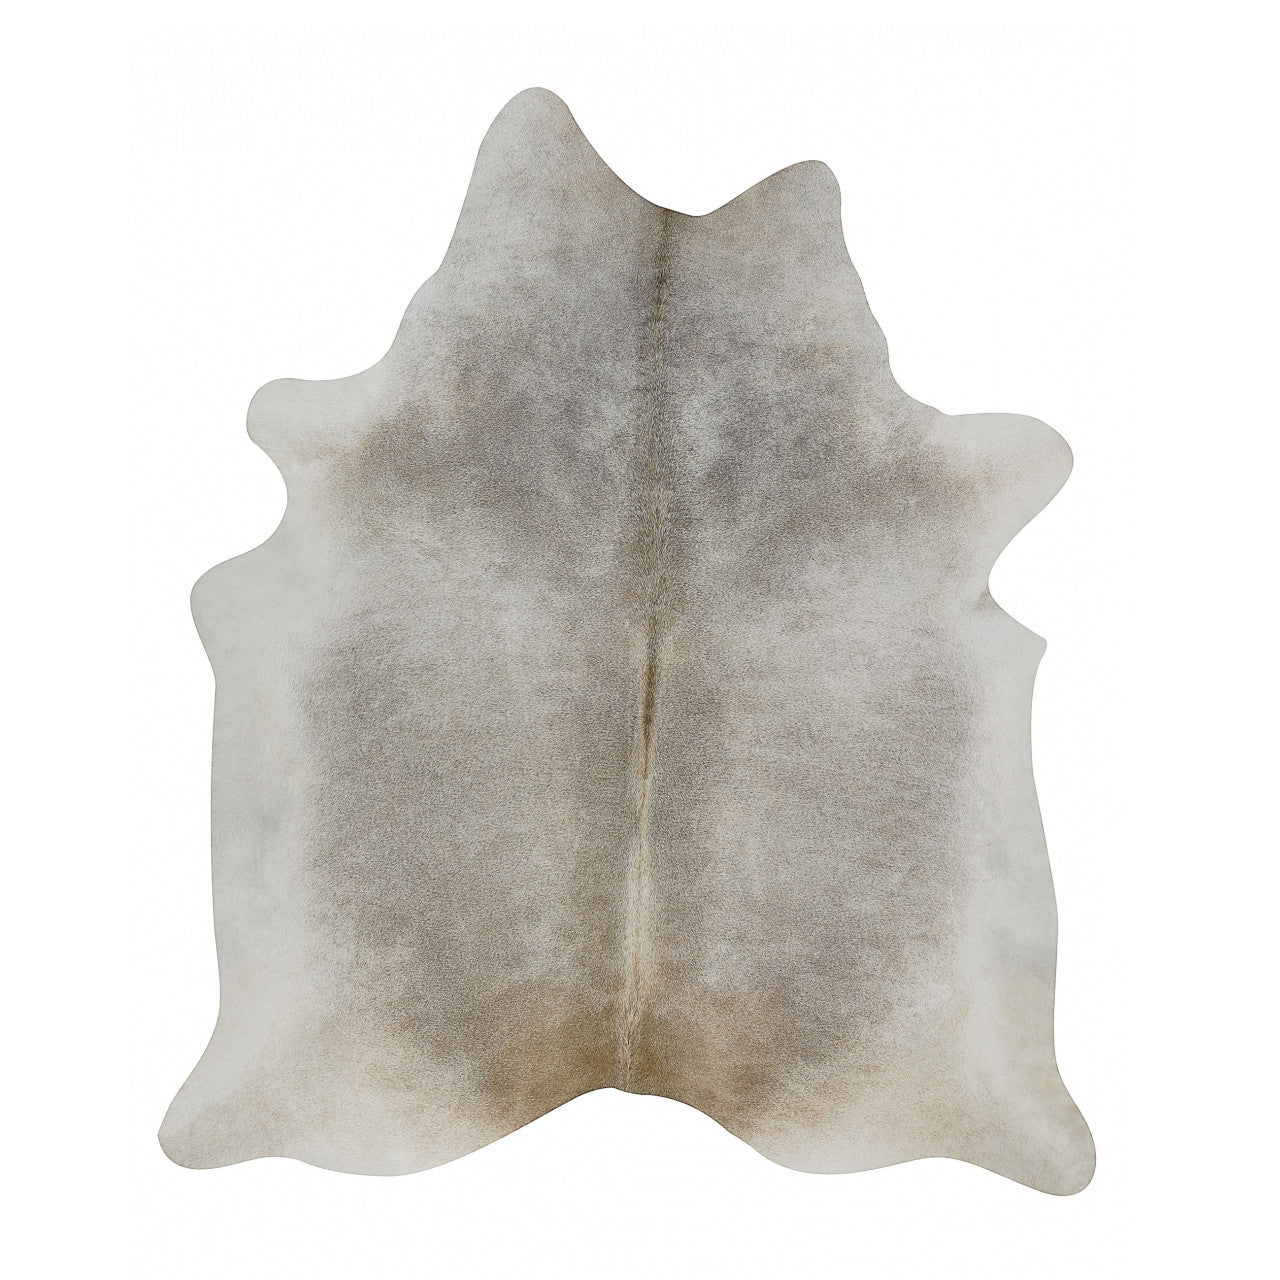 elegant rodeo cowhide rughair on hide adds a stylish look for your home or. grey tan cowhide rug – rodeo cowhide rugs